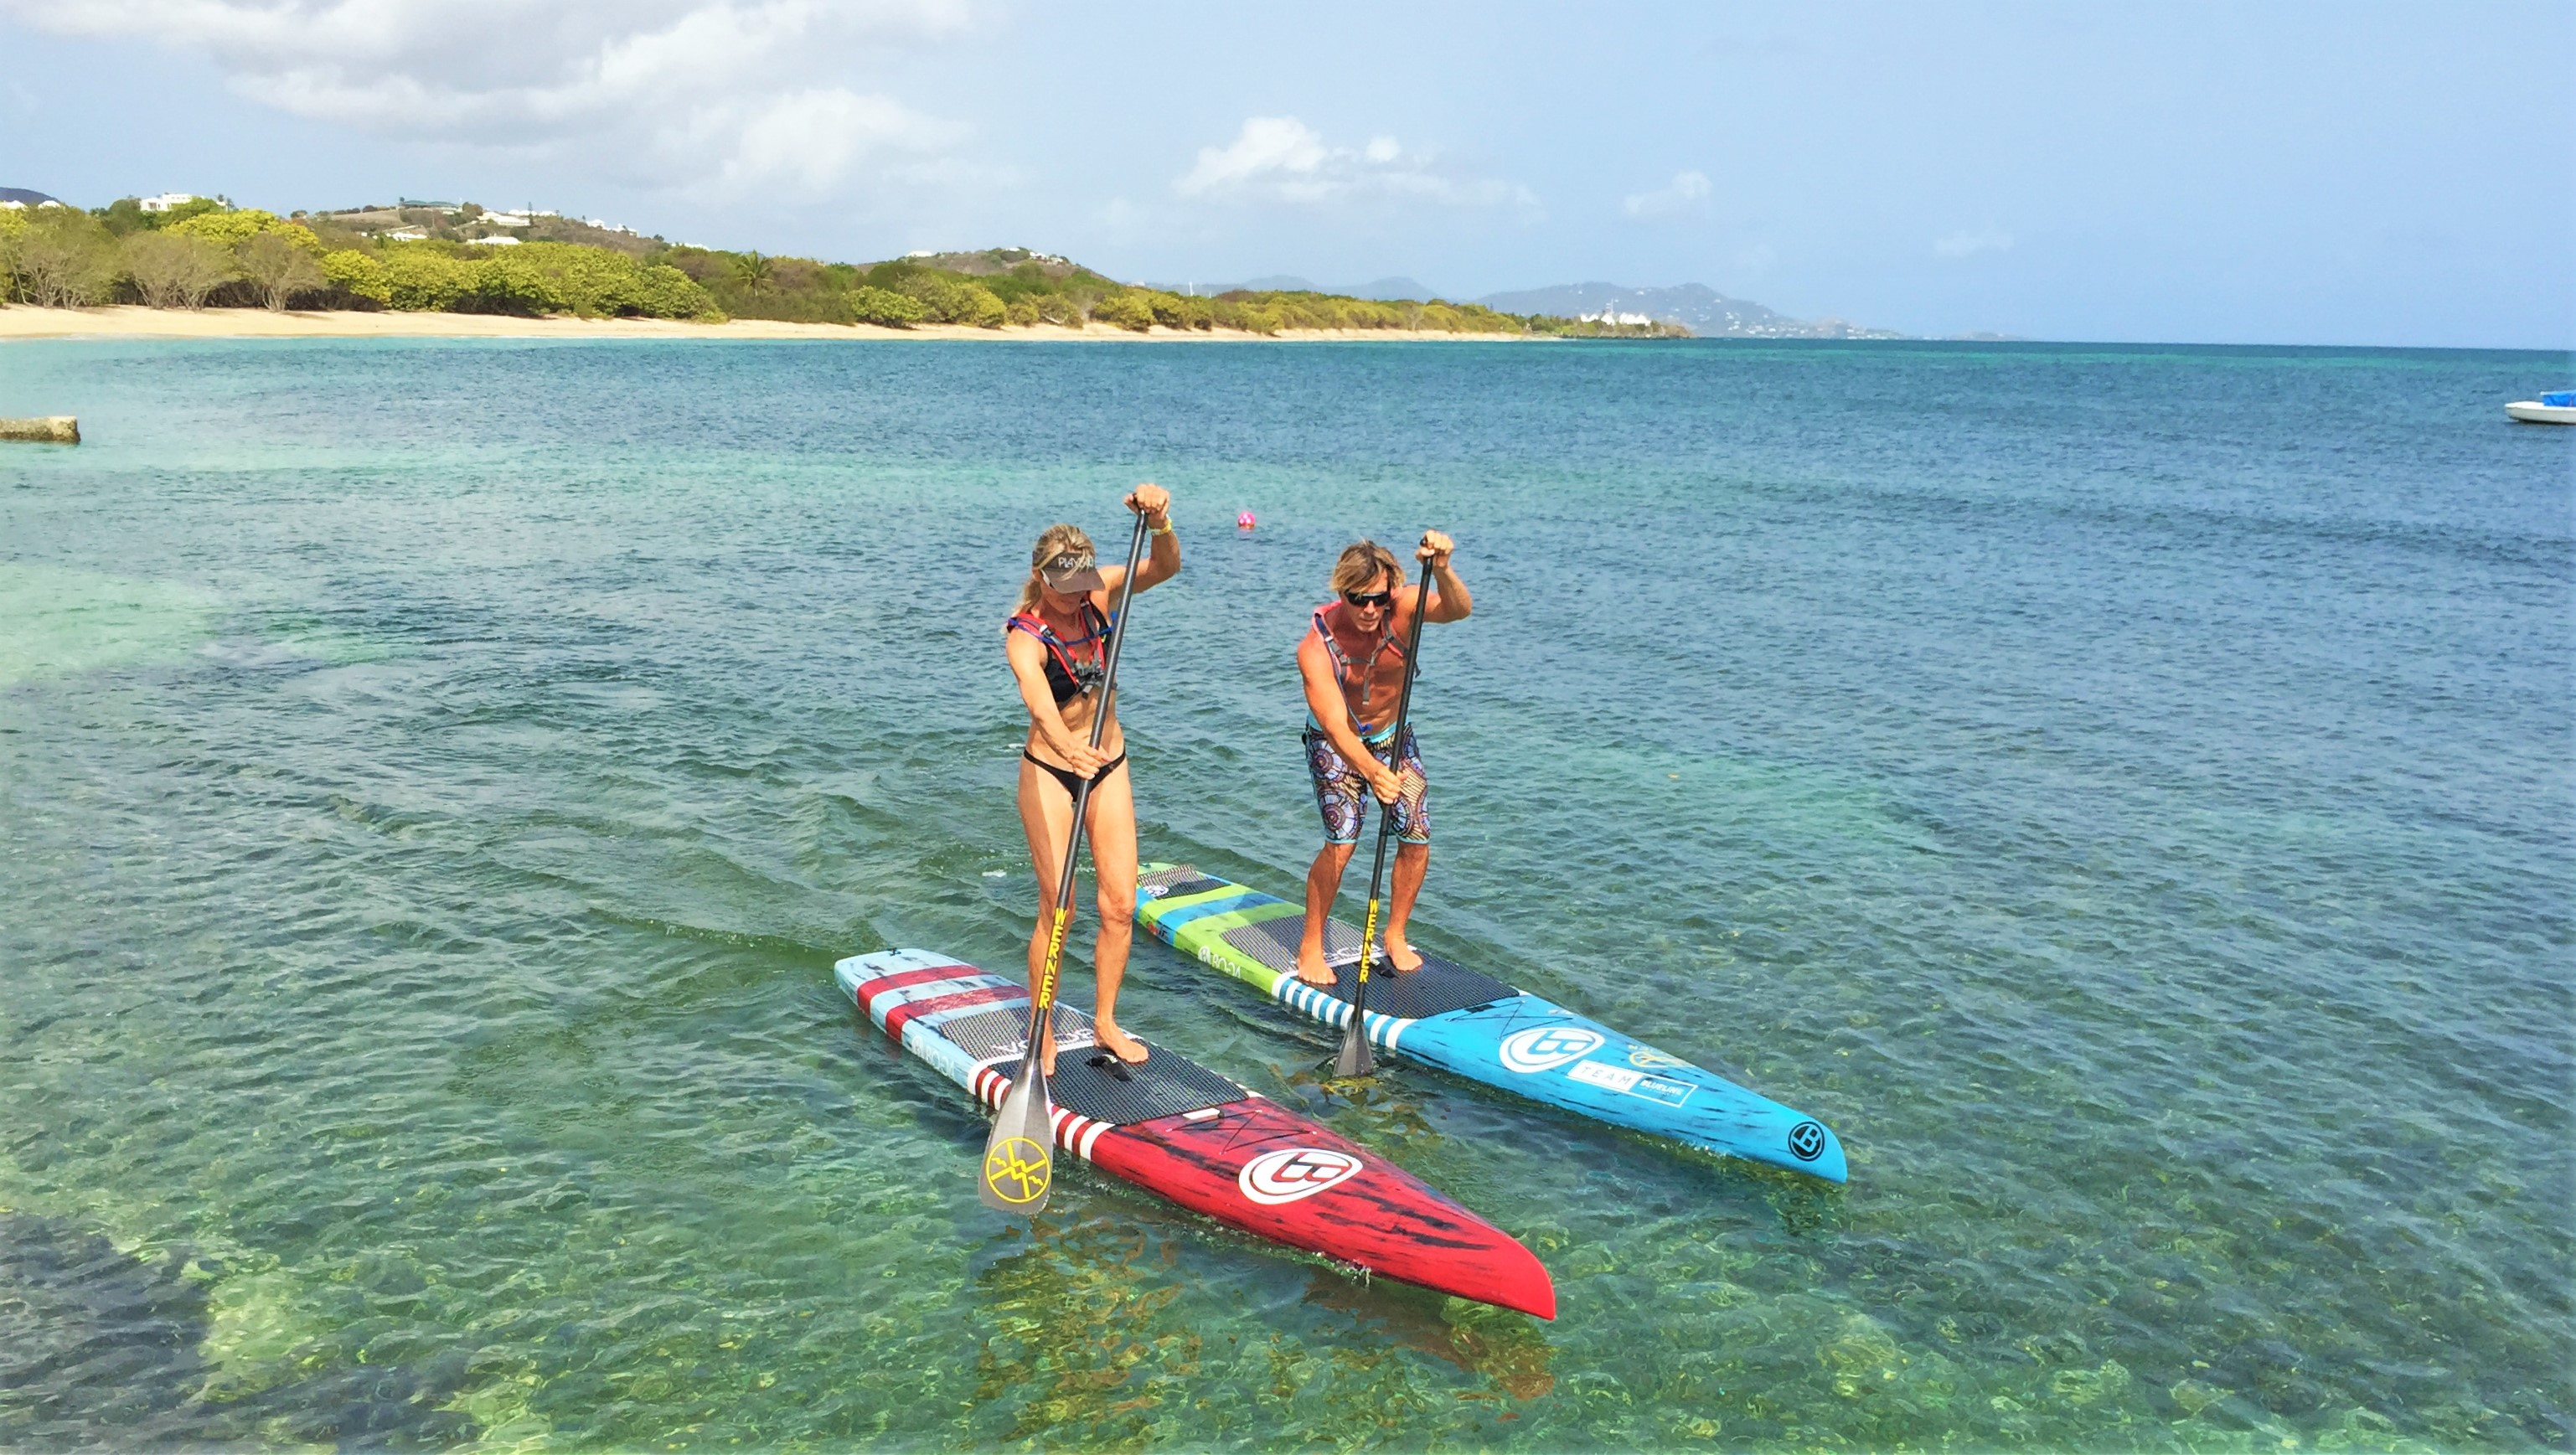 Paddle boarders at chenay bay beach resort st croix usvi